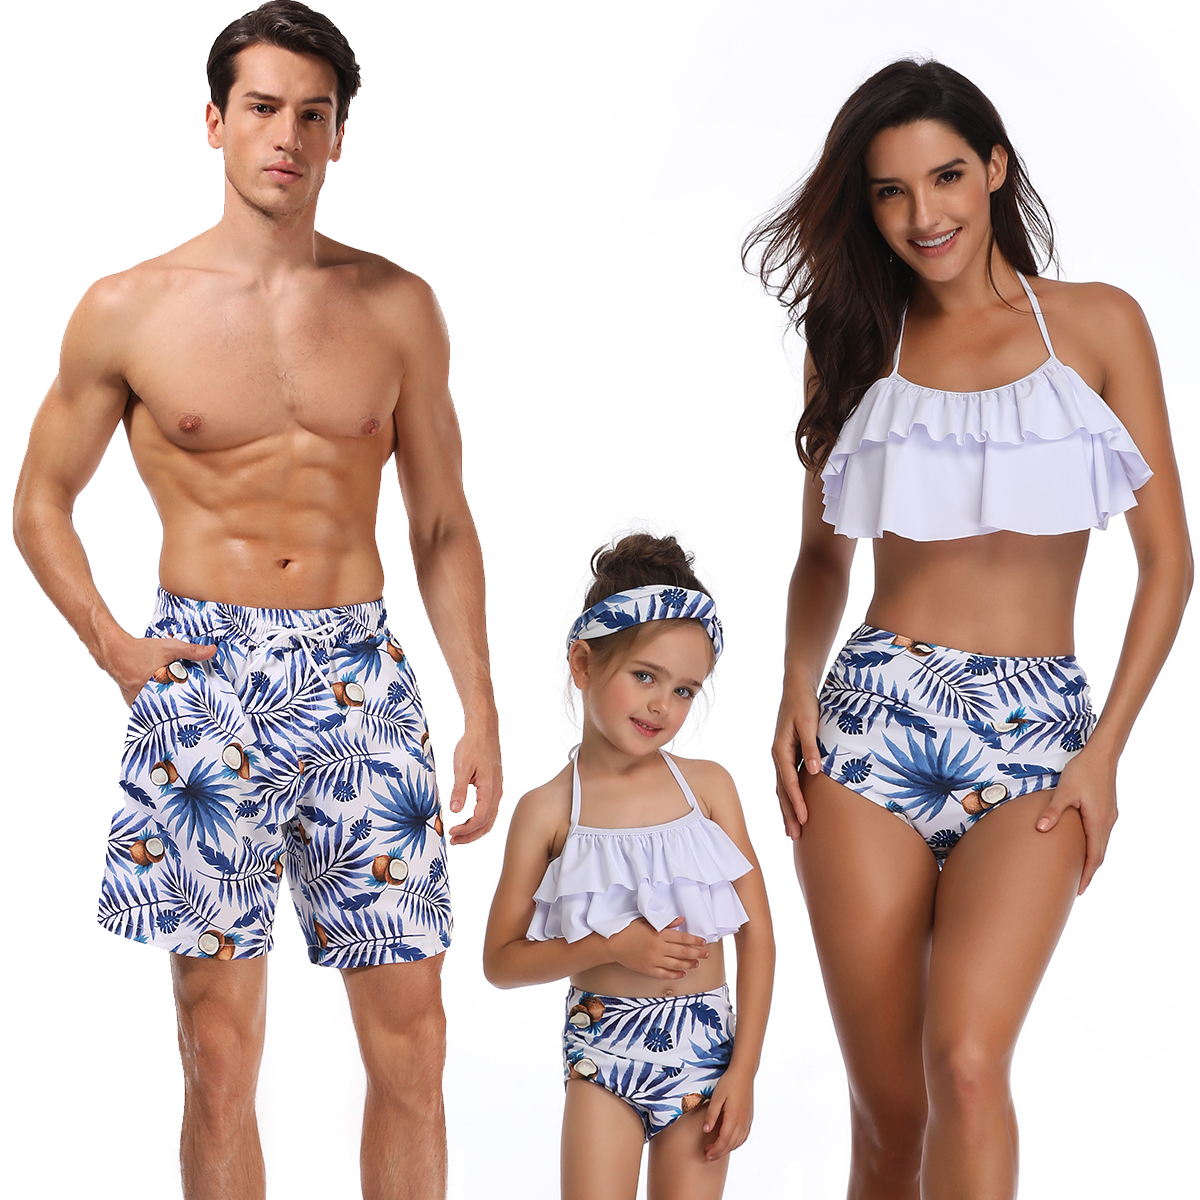 family swimsuits flounce mother daughter swimwear mommy dad and me clothes matching outfits look father son swimming shortsfamily swimsuits flounce mother daughter swimwear mommy dad and me clothes matching outfits look father son swimming shorts